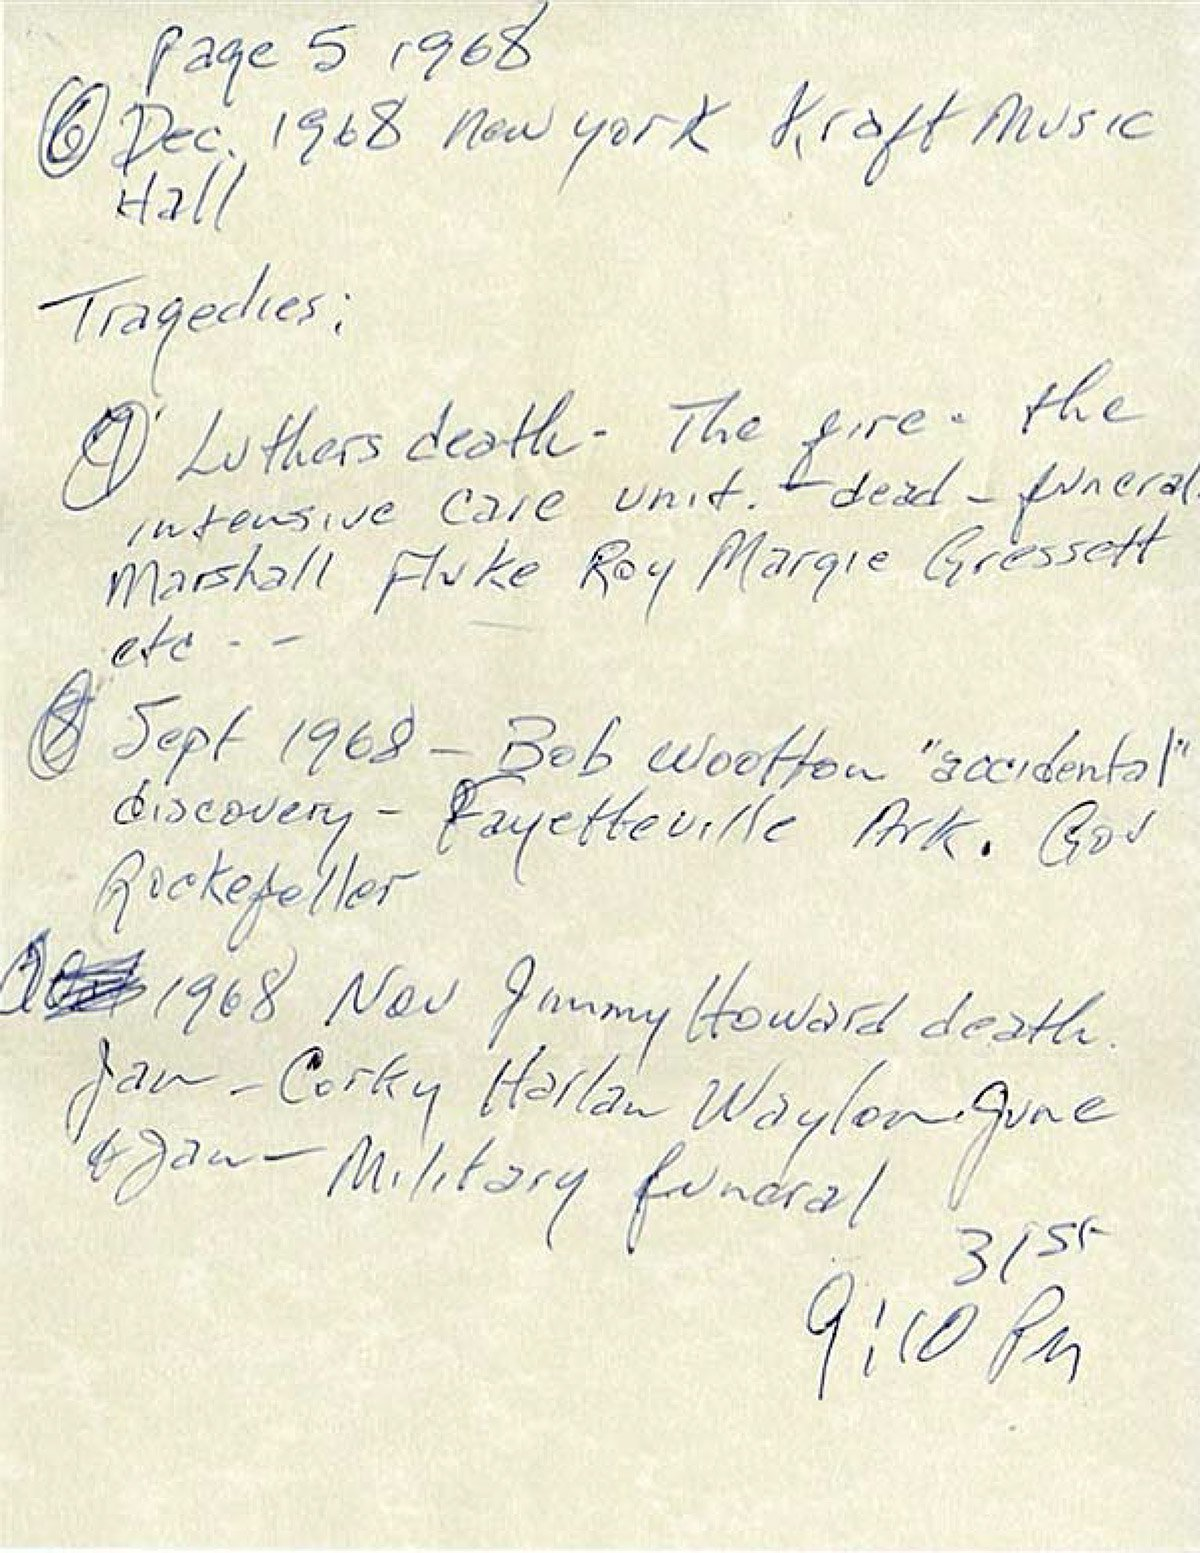 Johnny Cash letter written to himself December 31, 1968 Page 5